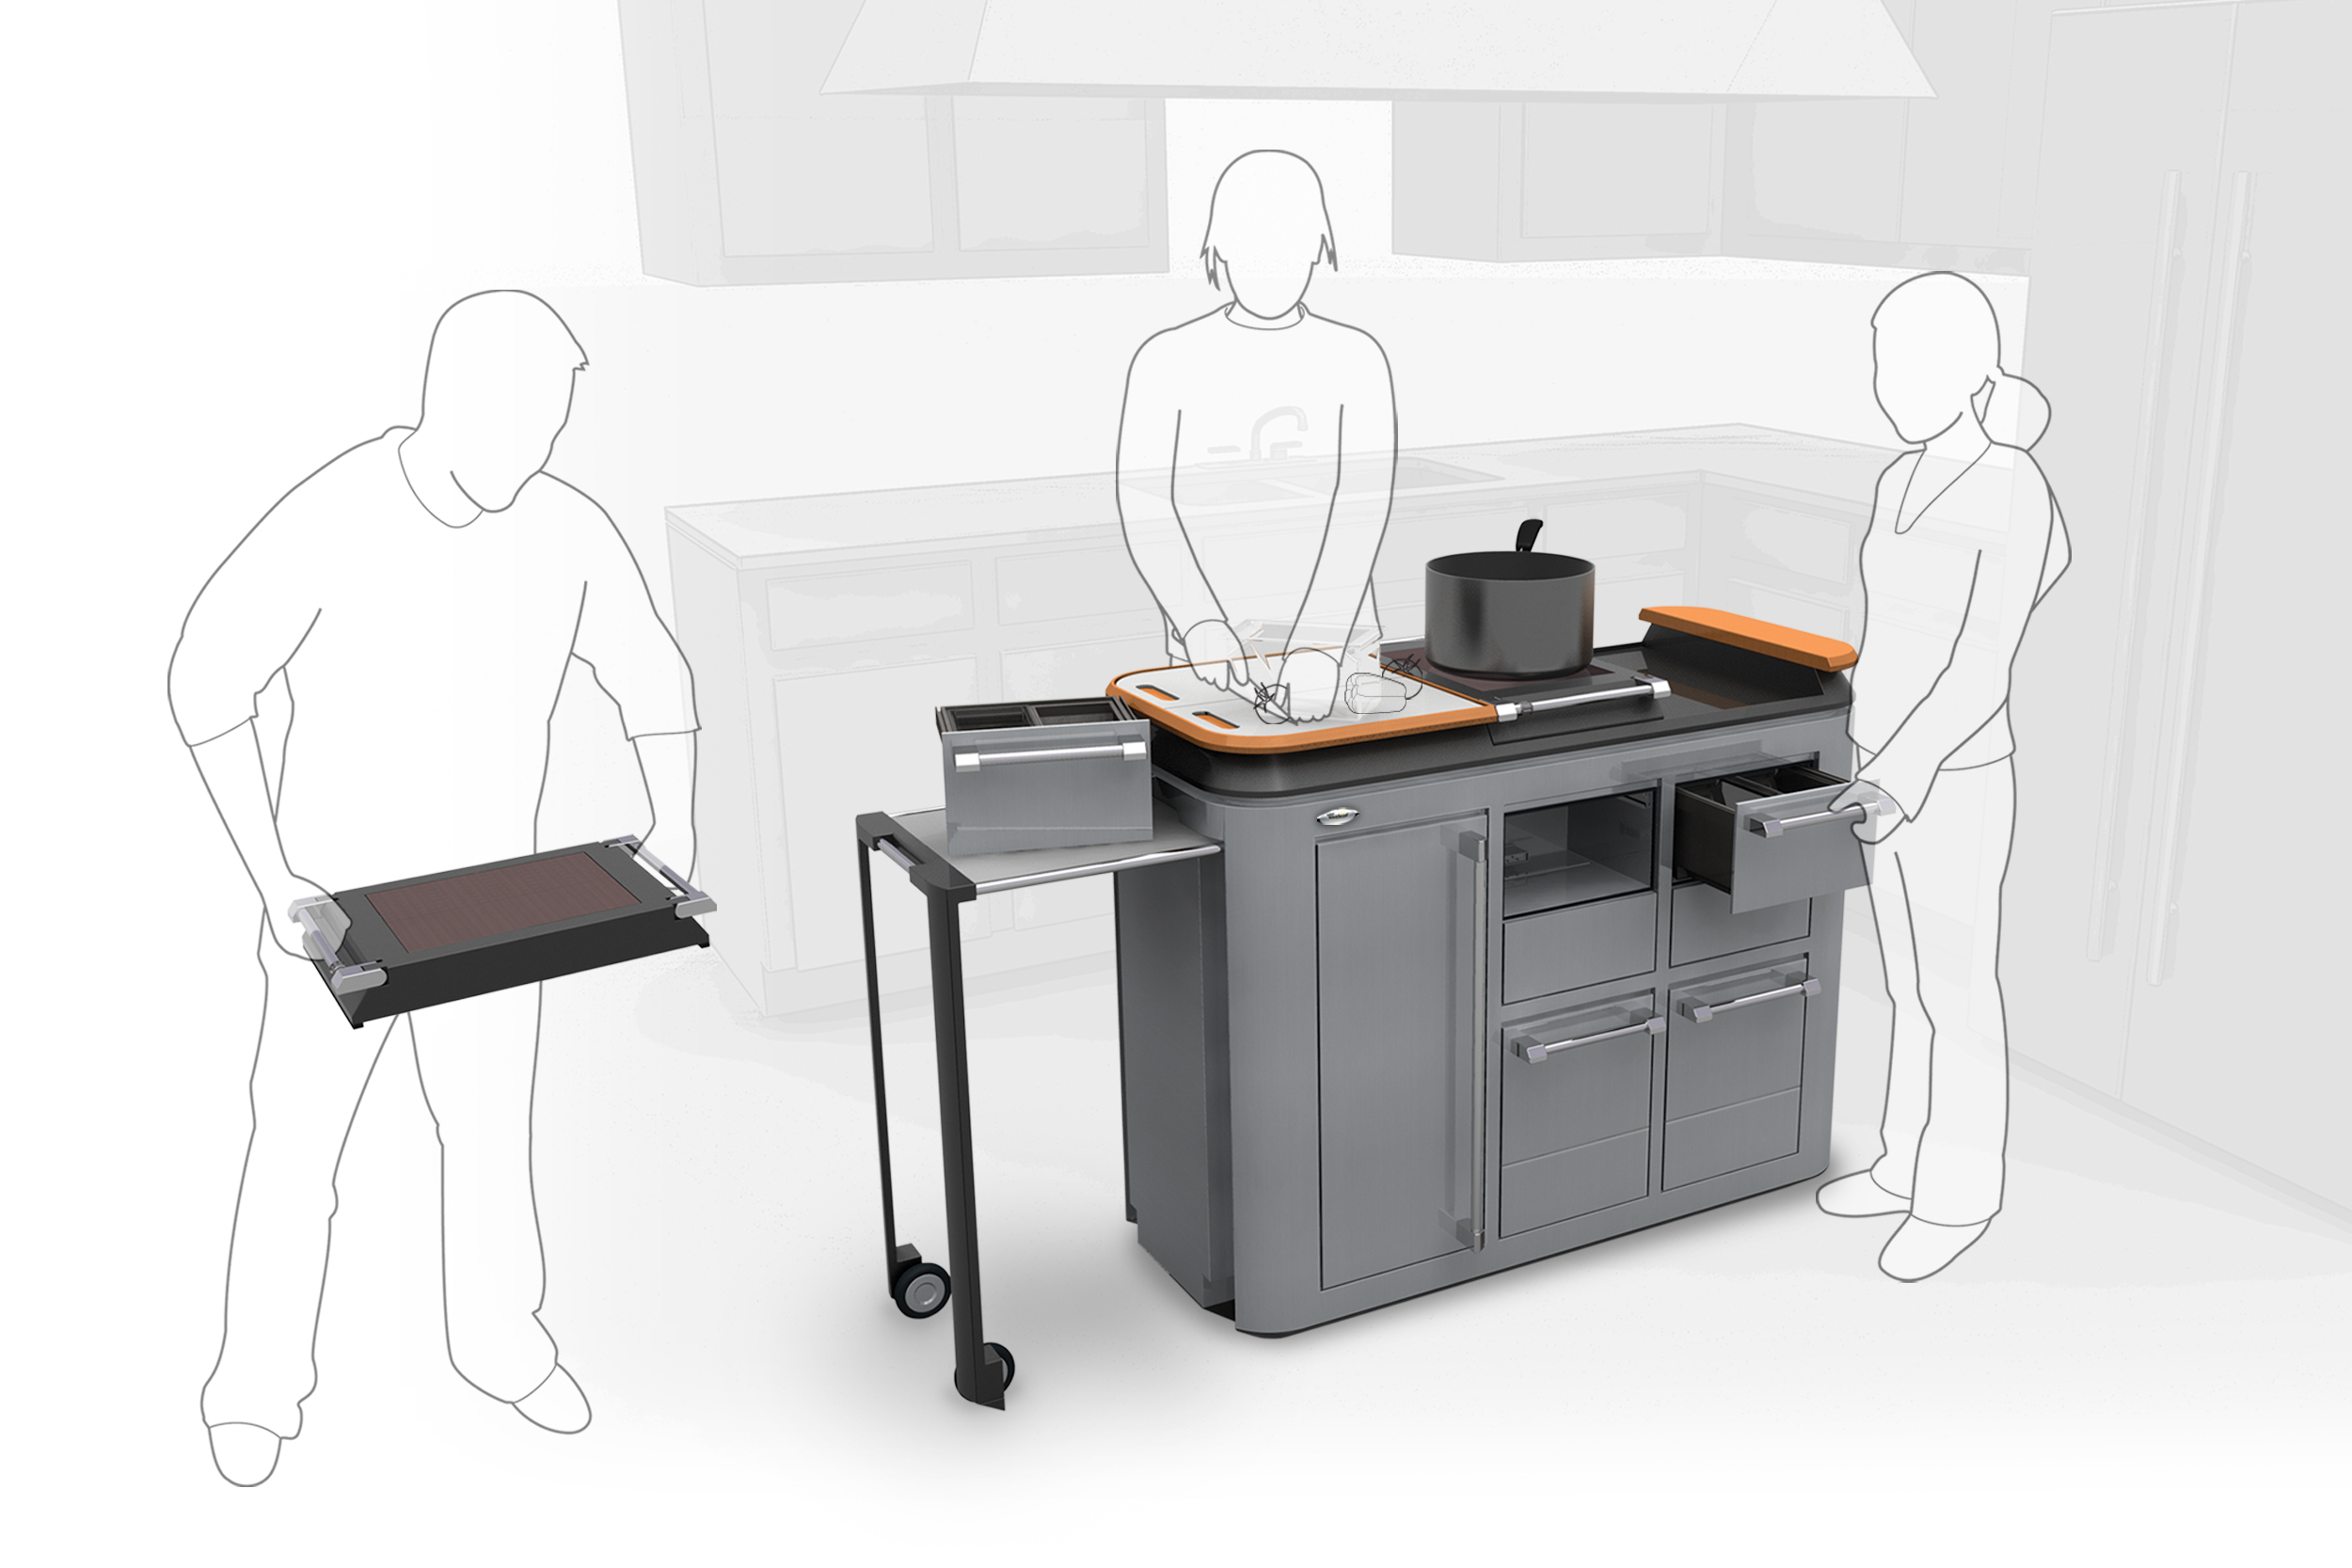 Whirlpool Cook Spot Concept  |  Product Design